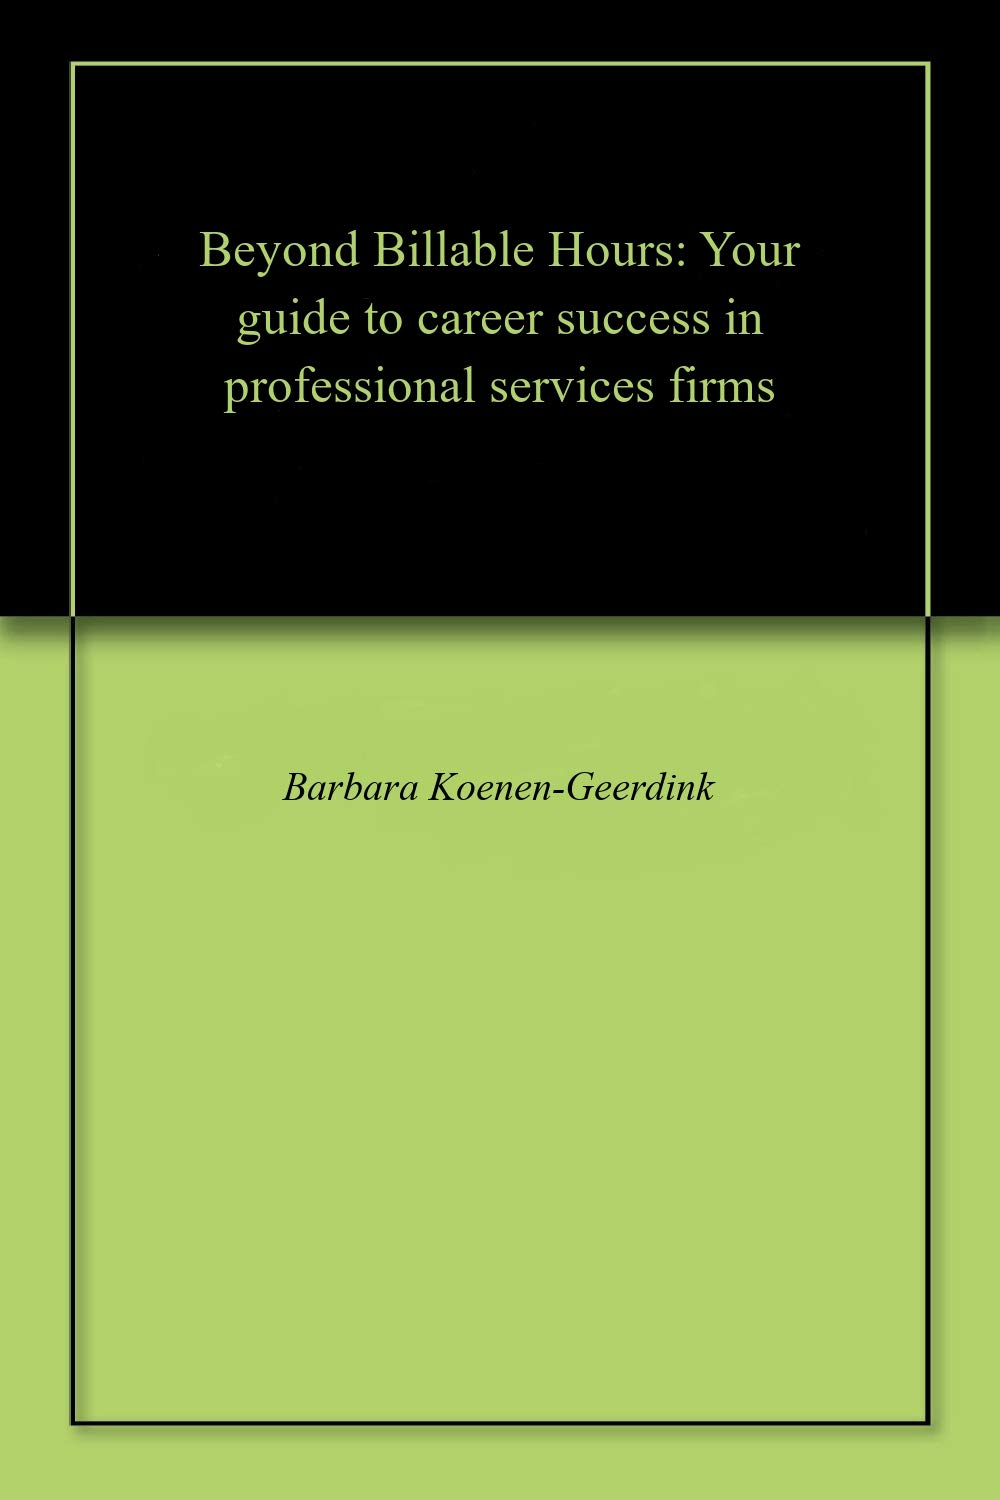 Beyond Billable Hours: Your guide to career success in professional services firms